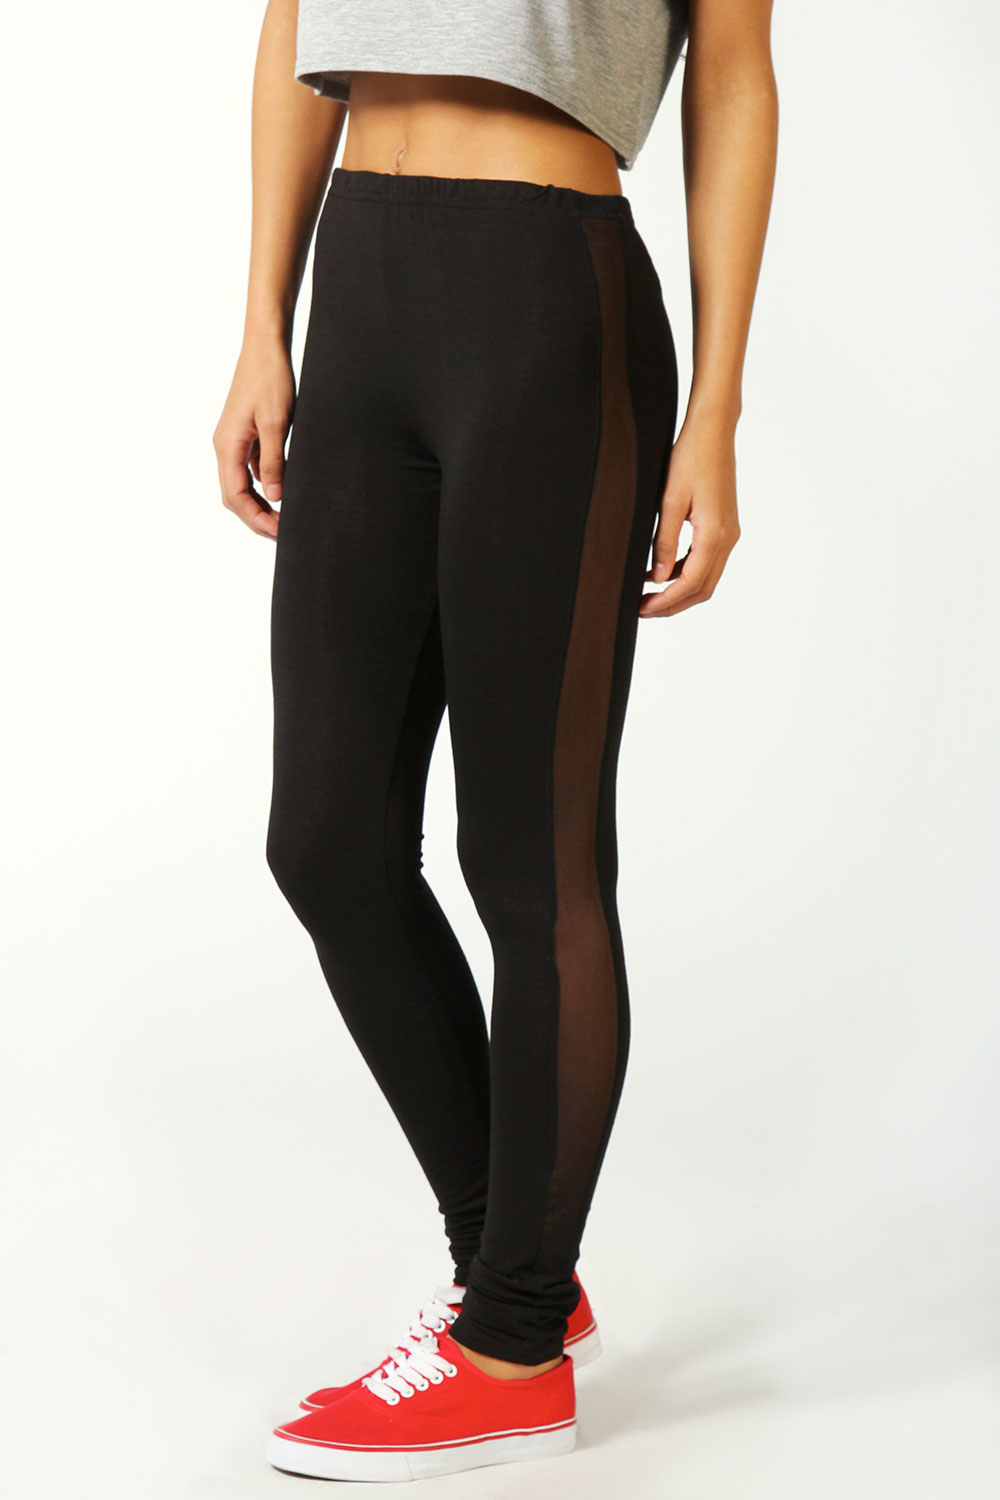 Mesh Side Leggings - Trendy Clothes